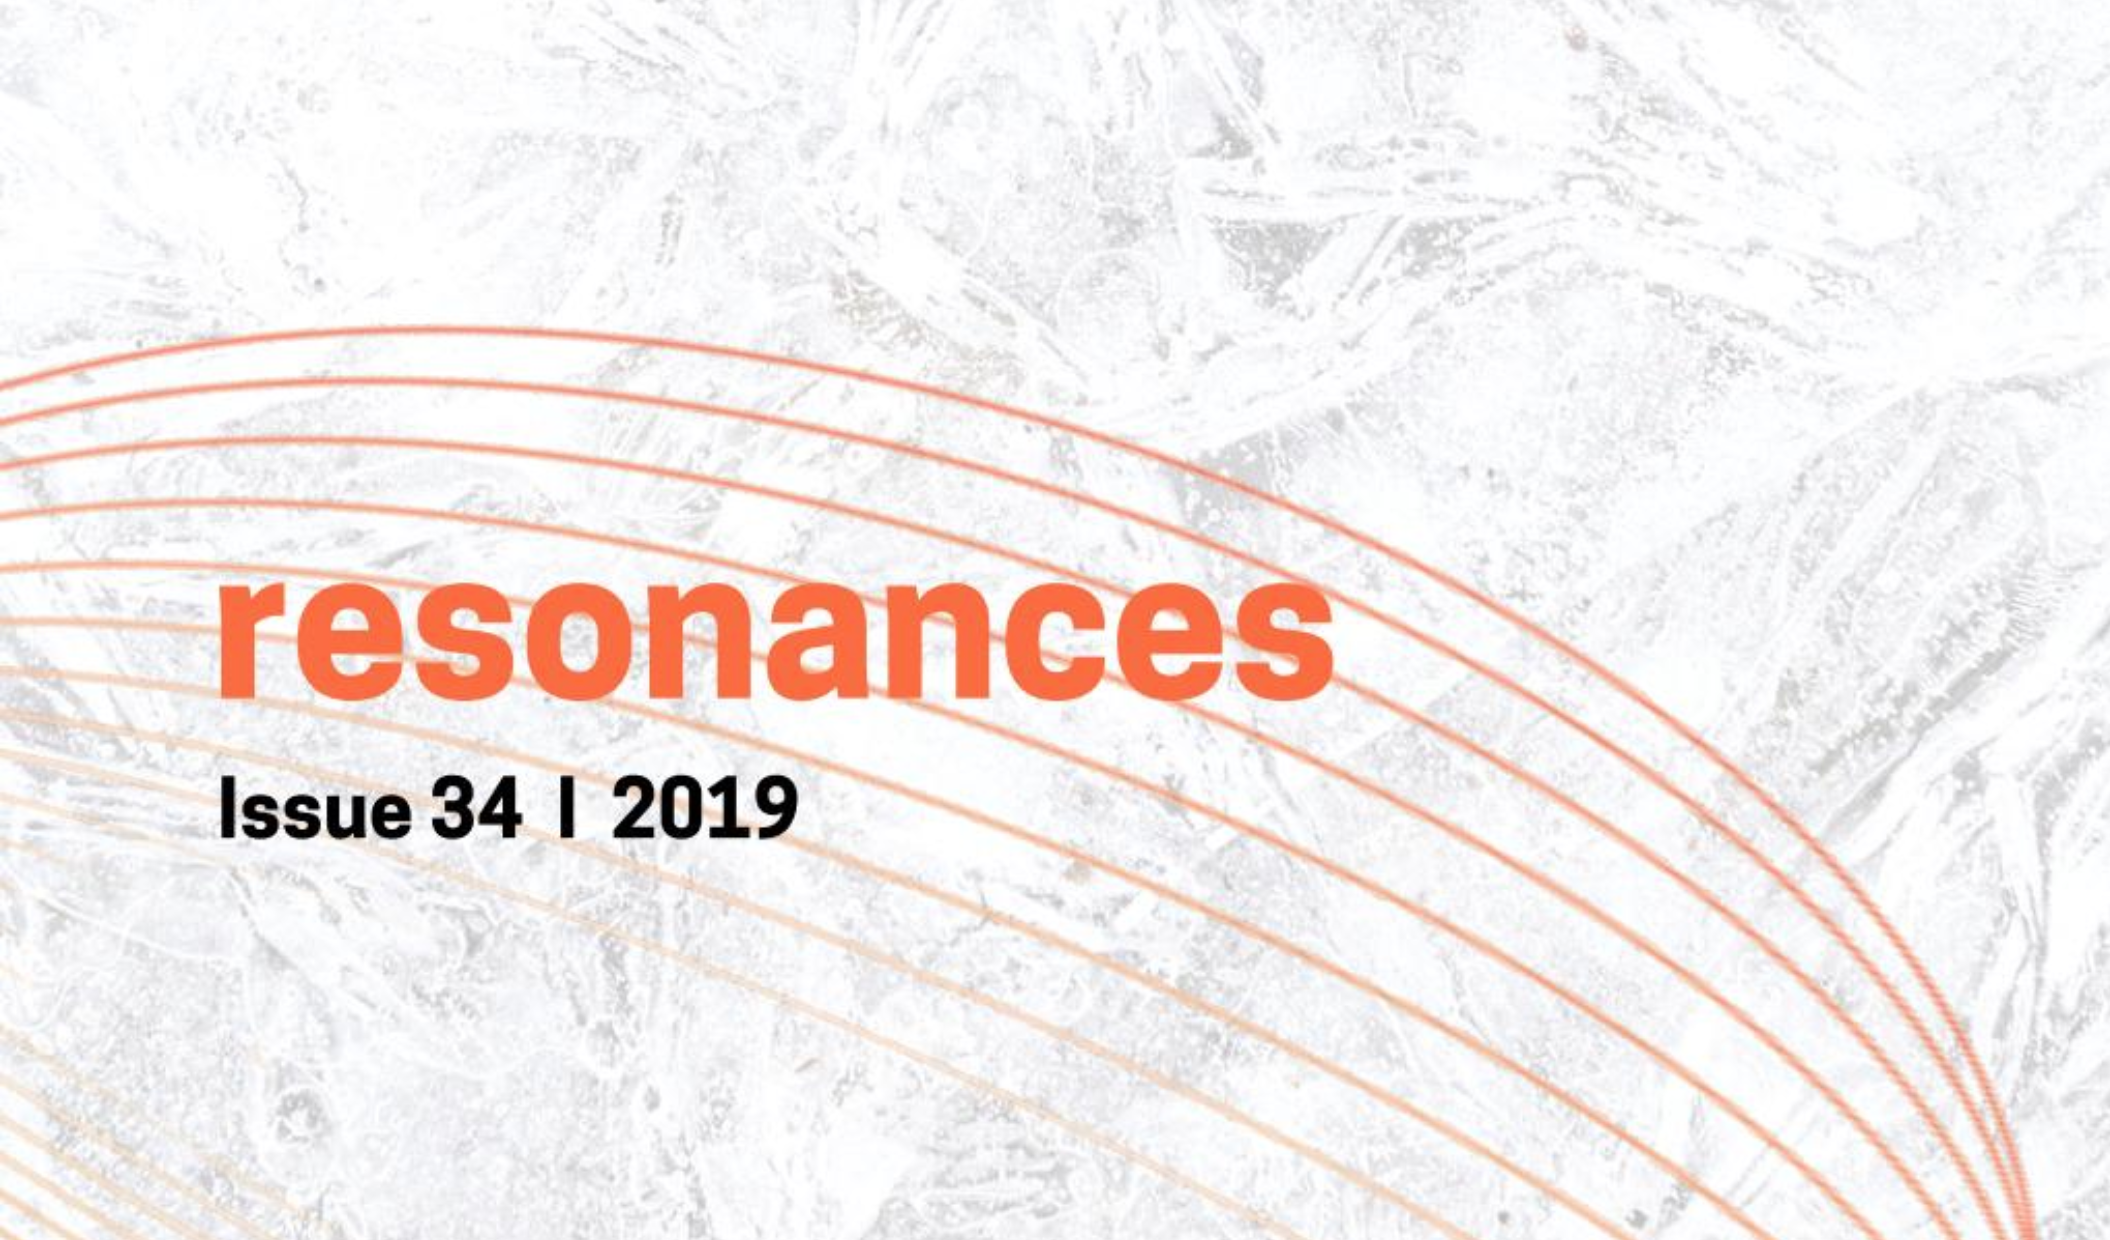 Resonances: 2019 Issue